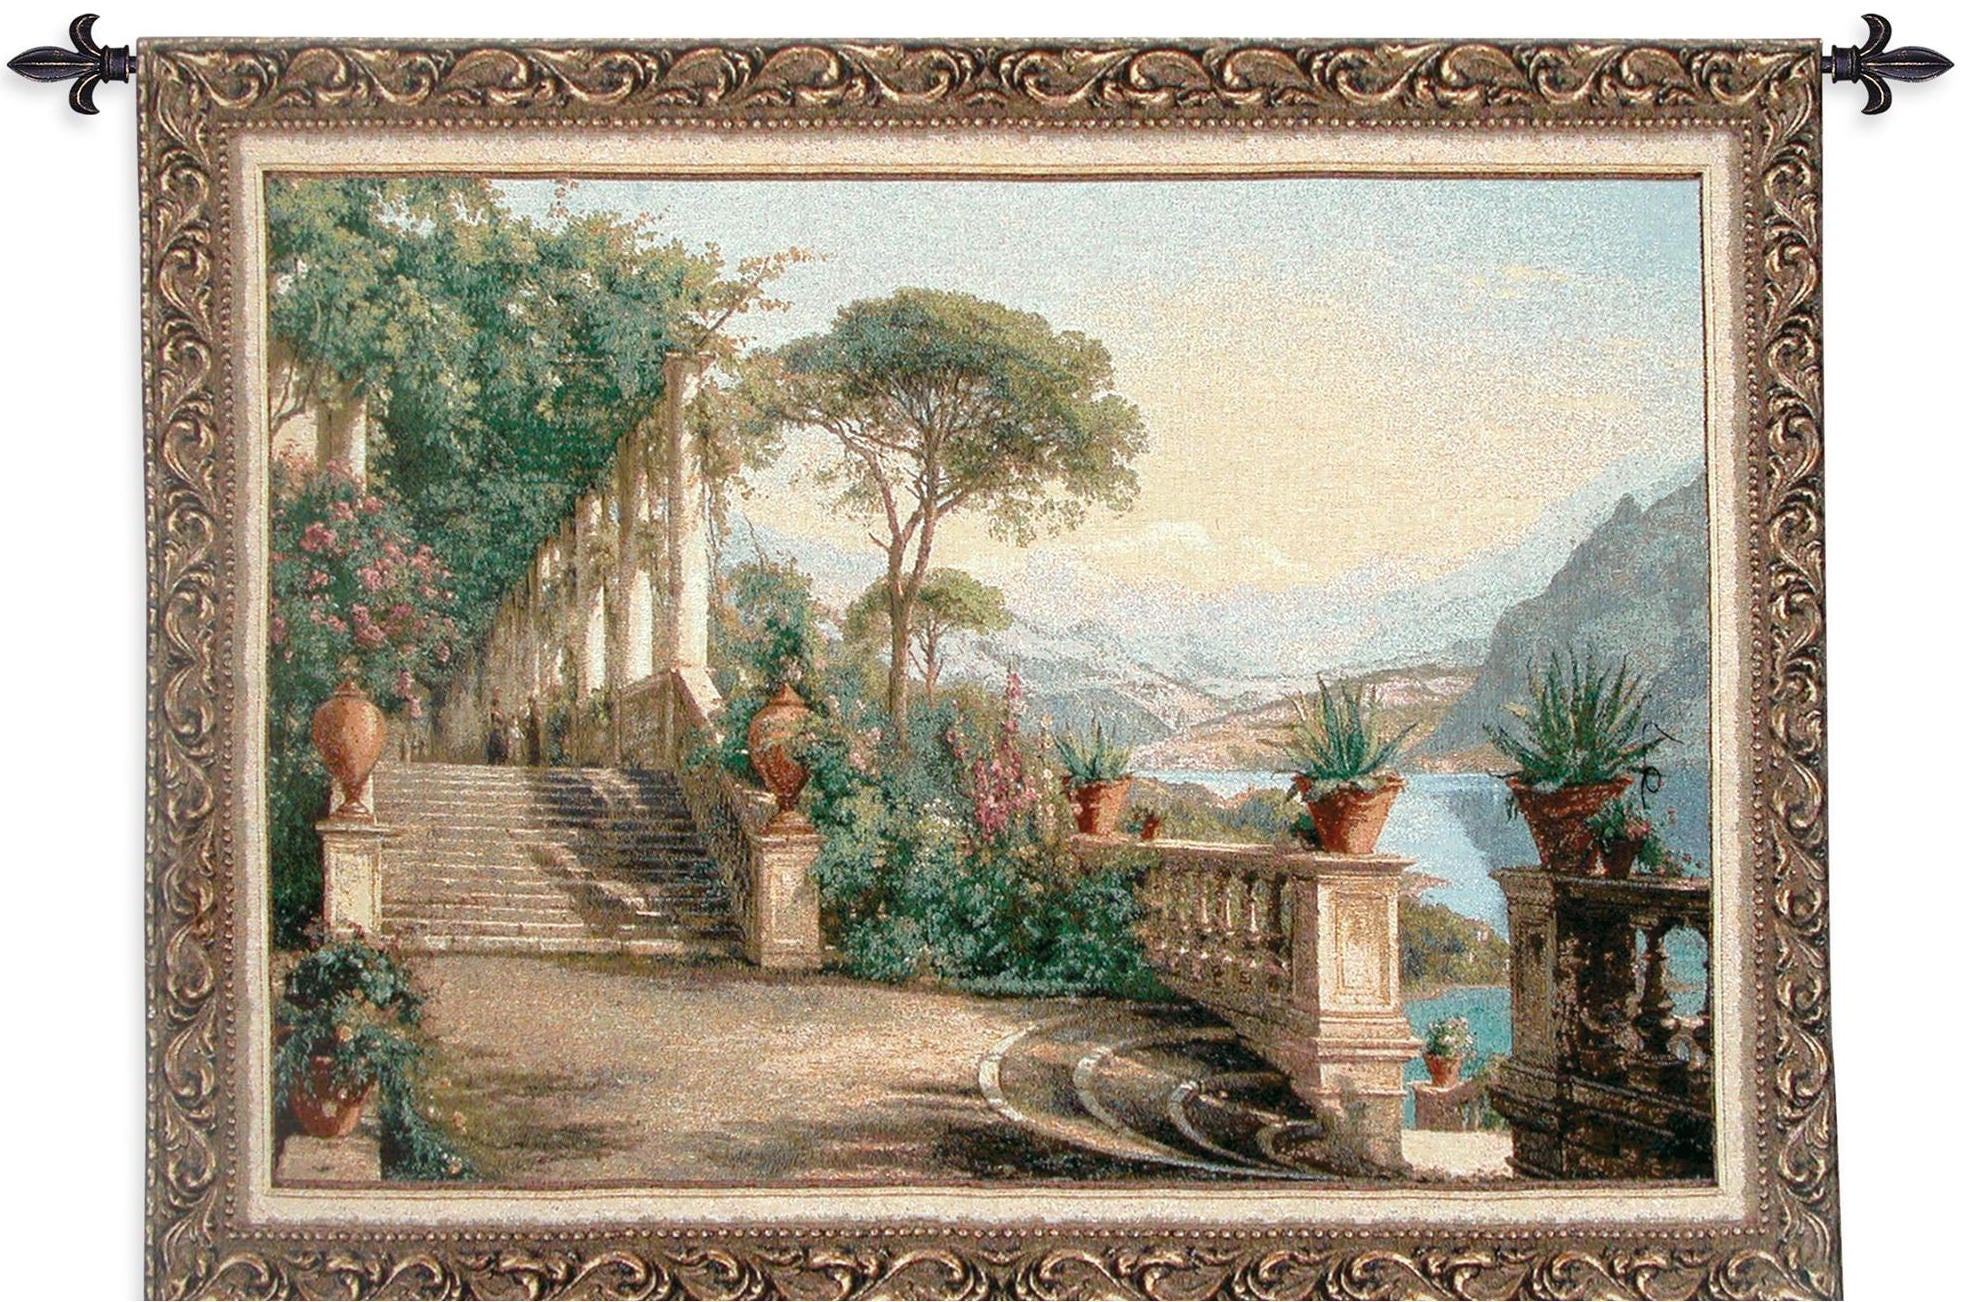 Lodge at Lake Como Woven Tapestry Decor